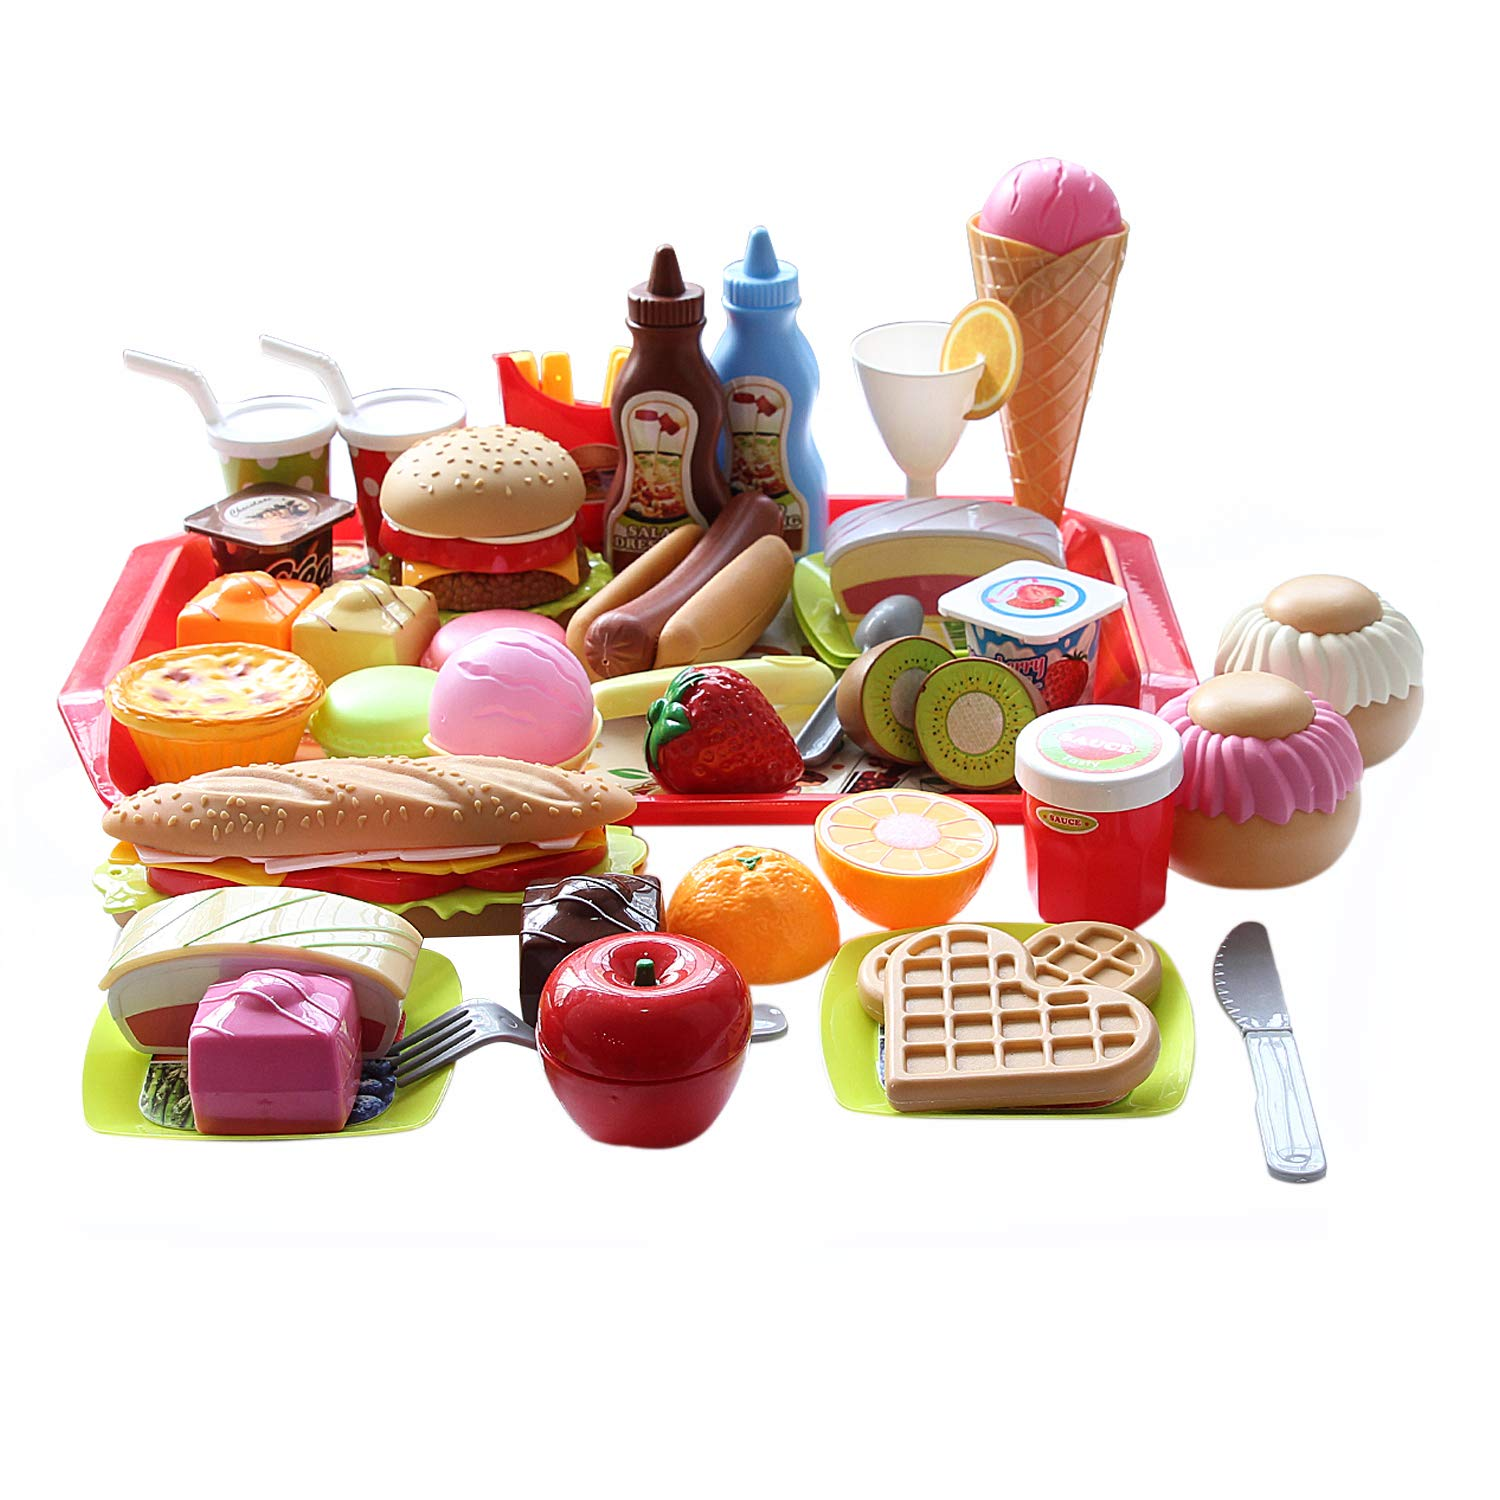 Catchstar Fast Food Toy Set Variety Fast Food Pretend Playset Durable Plastic Pretend Mcdonalds Play Food Fast Food Hamburger Fries Snack Picnic Toys Foods Gift For Kids Toddler Childrens Play Kitchen by CatchStar